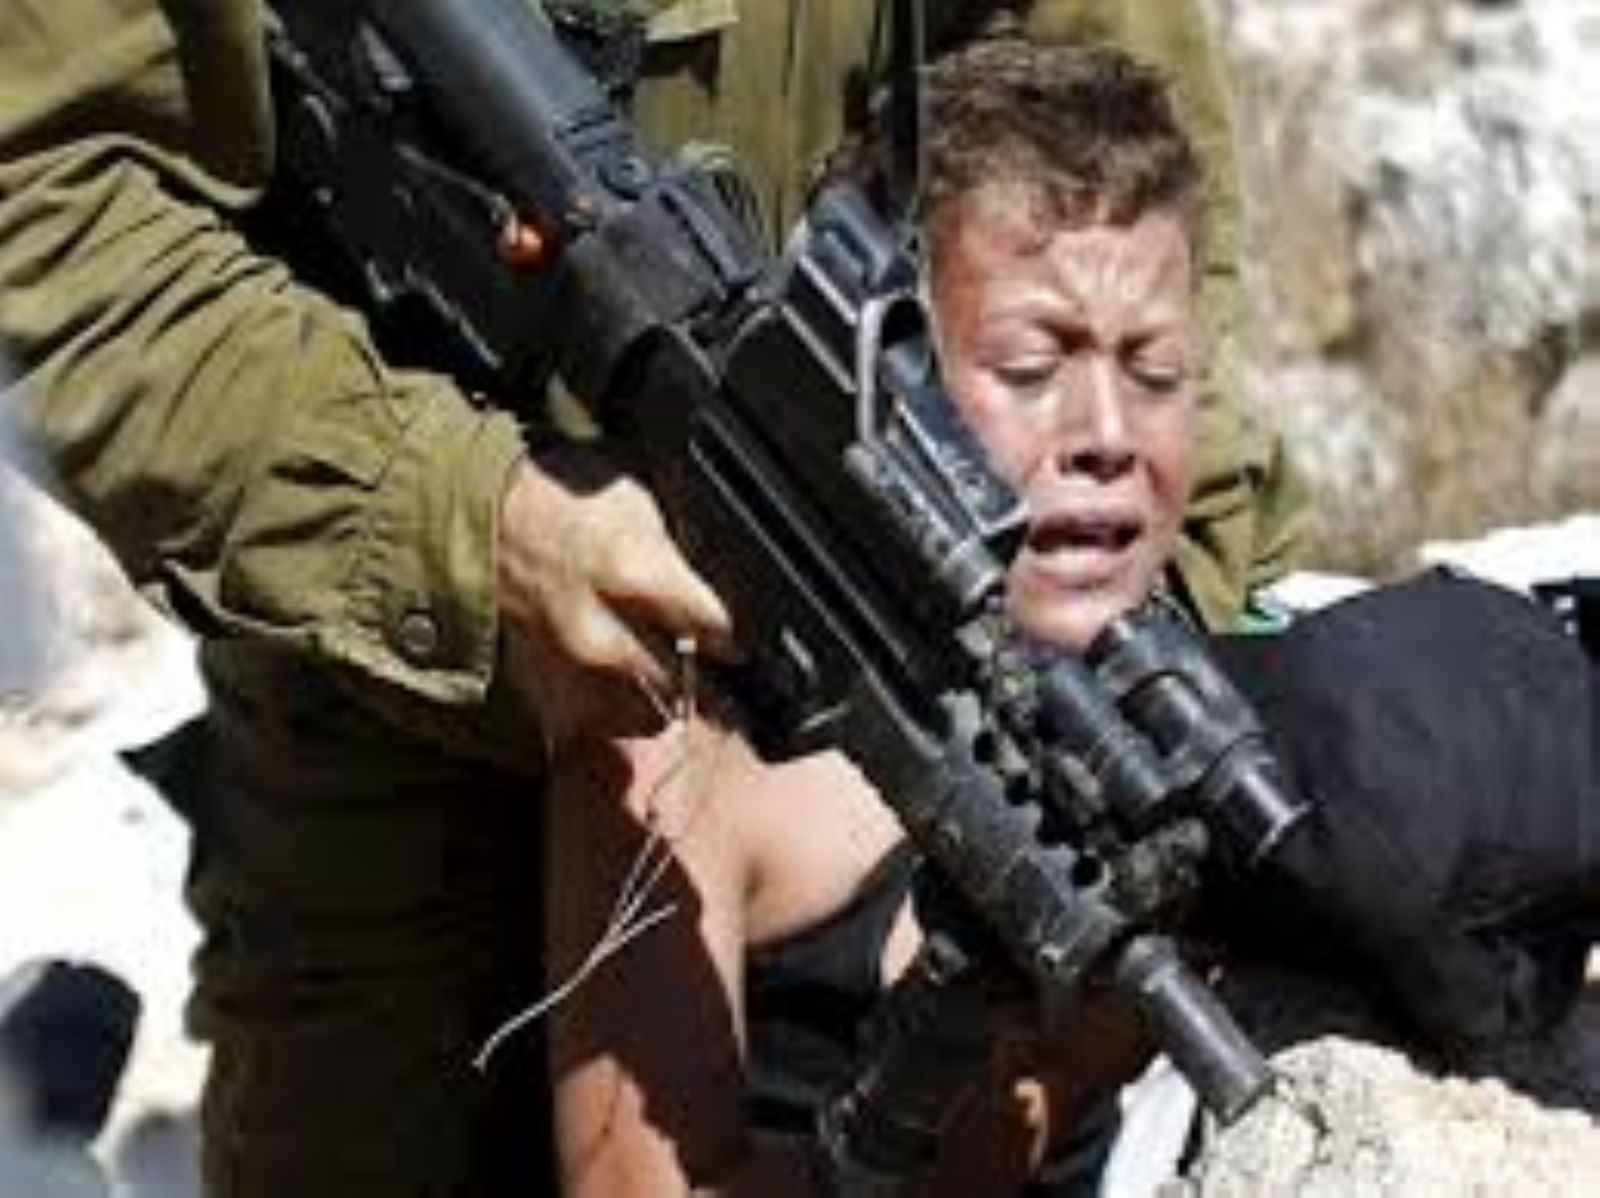 Israel hands over three Palestinian minors to PA